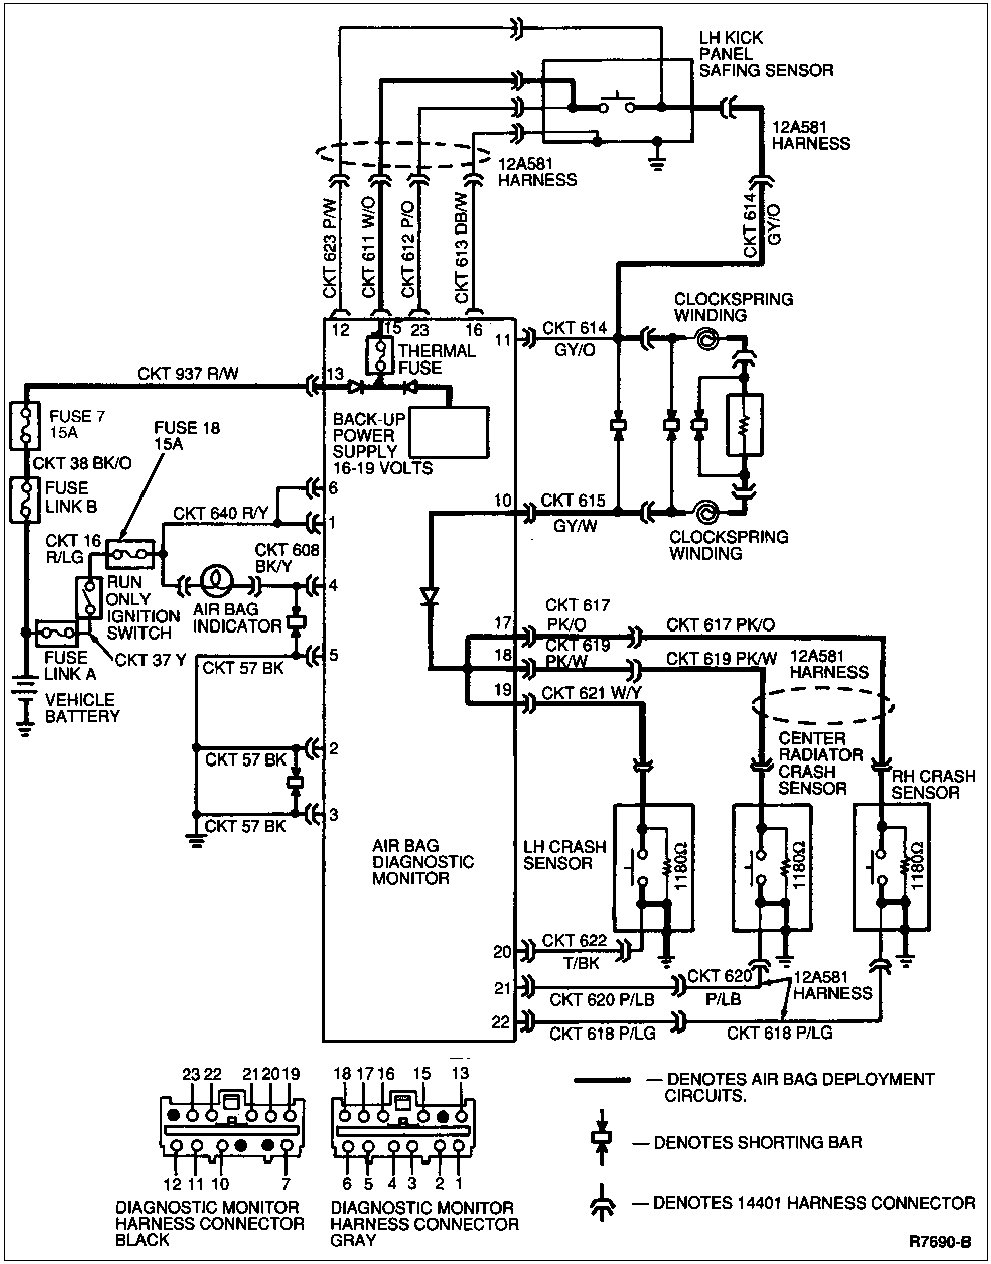 1992 Town Car Wiring Diagram 1979 ford f150 wiring harness ...  Ford F Wiring Diagram on 92 ford super duty wiring diagram, 92 ford tempo wiring diagram, 1992 f150 wiring diagram, 92 ford f-150 fuse box diagram, 92 lincoln town car wiring diagram, 92 ford ranger wiring diagram, 92 gmc 1500 wiring diagram, 92 ford f-150 engine diagram, 92 toyota pickup wiring diagram,